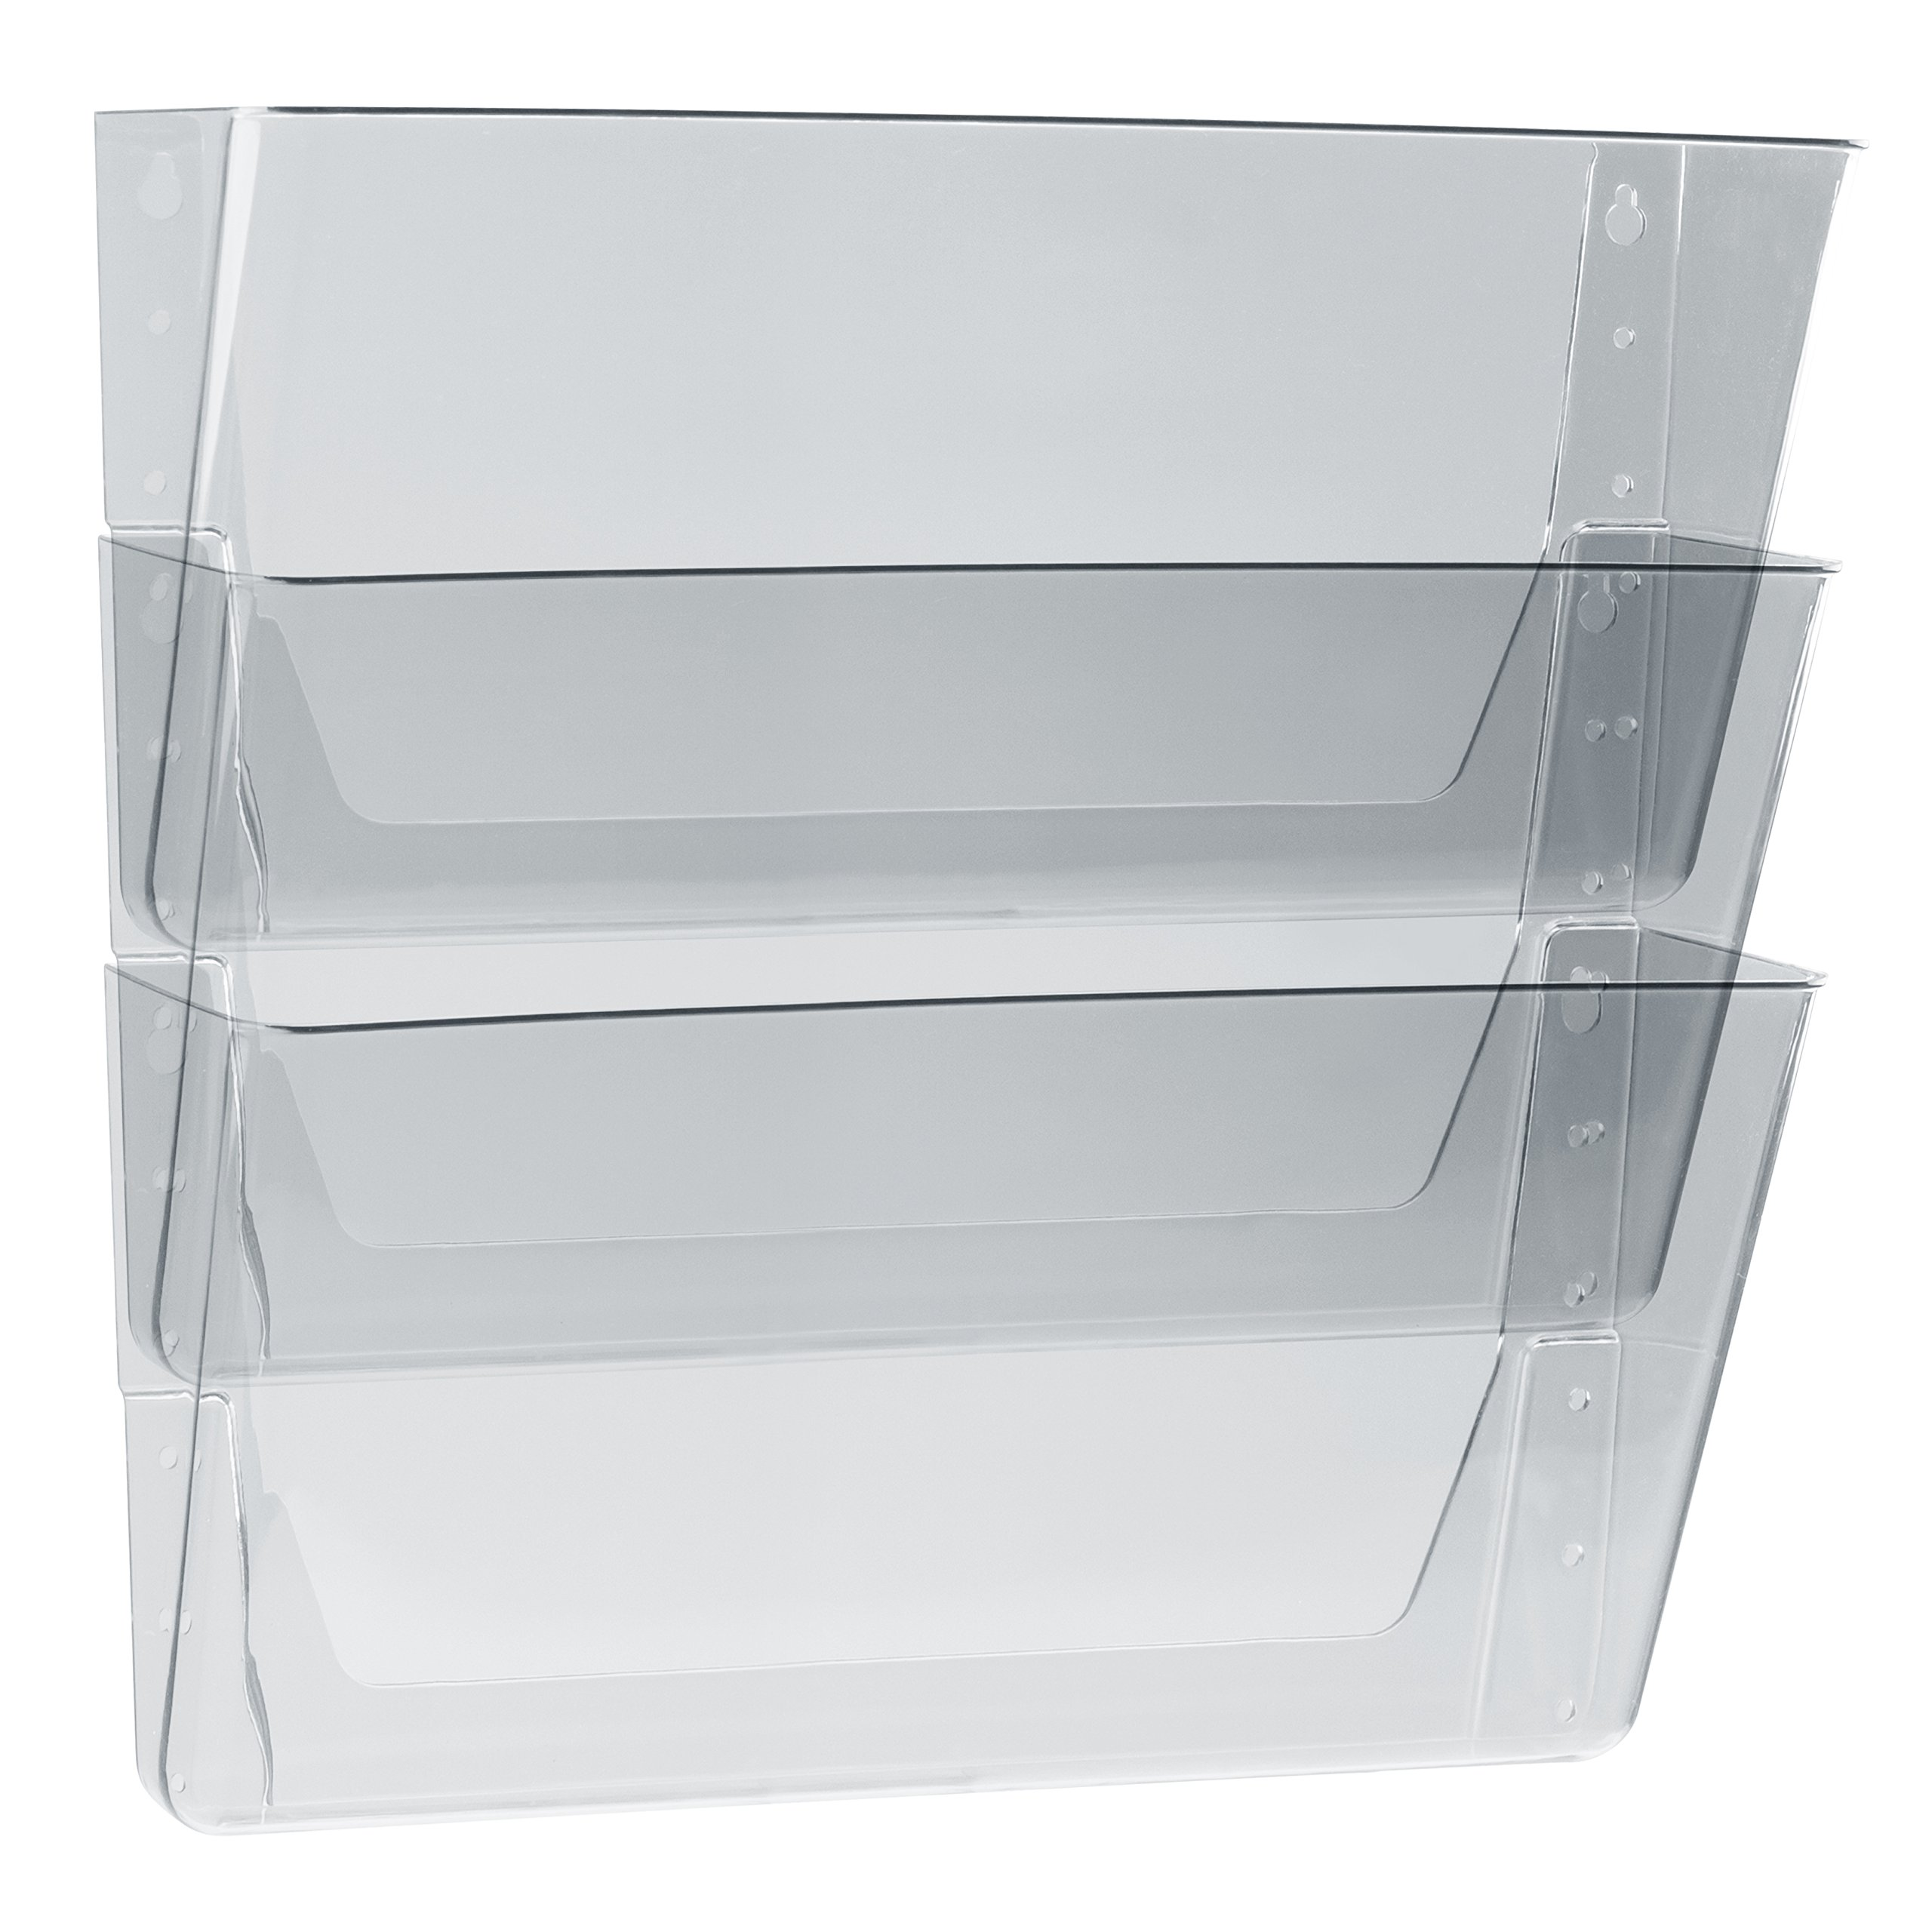 Storex Wall Files, 16 x 4 x 7 Inches, Legal, Clear, Case of 6 3-Packs (70229U06C)